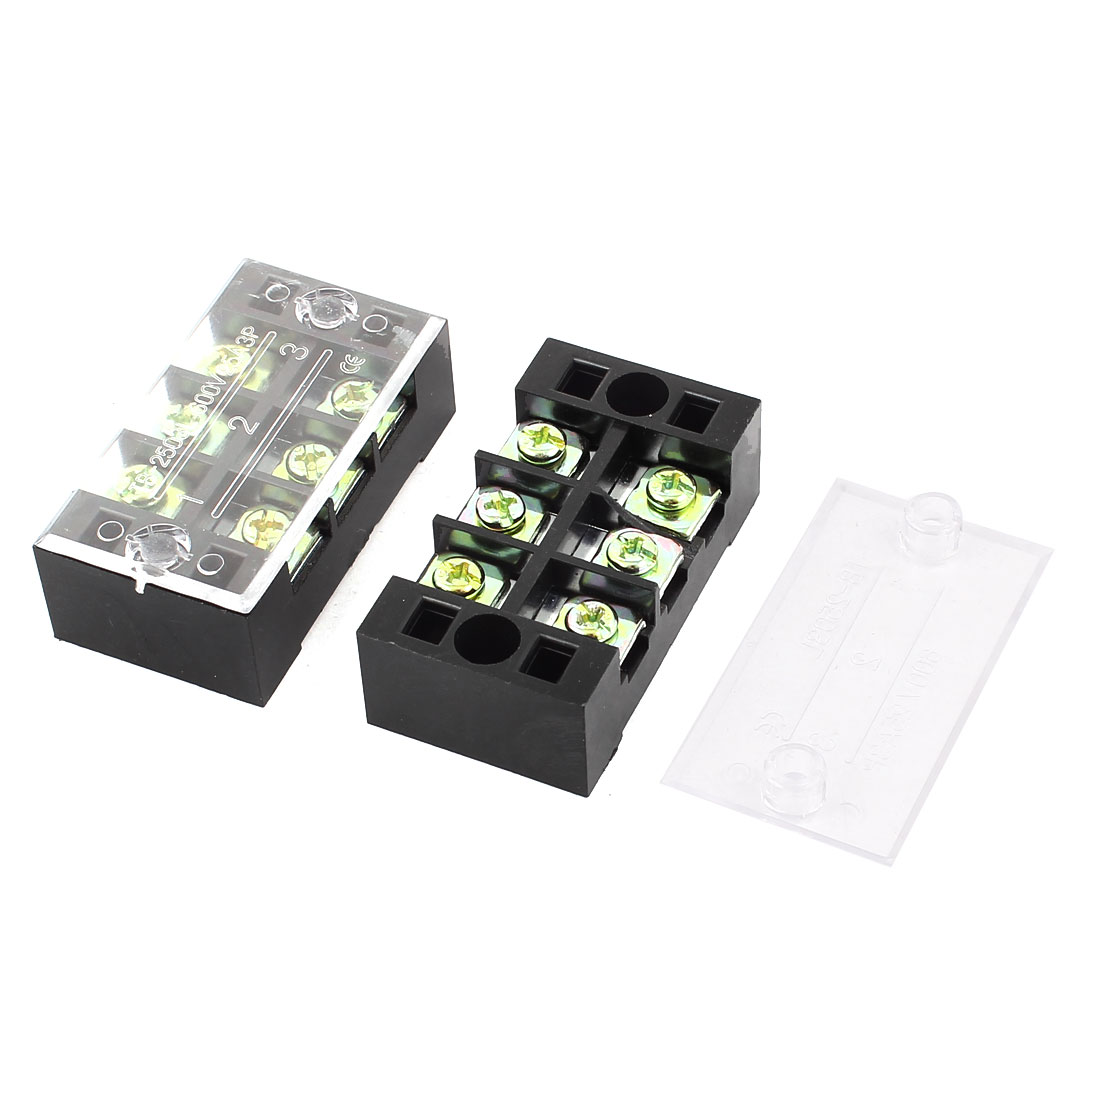 600V 25A 3 Position Dual Row 6 Screw Electric Terminal Barrier Strip Block 2 Pcs